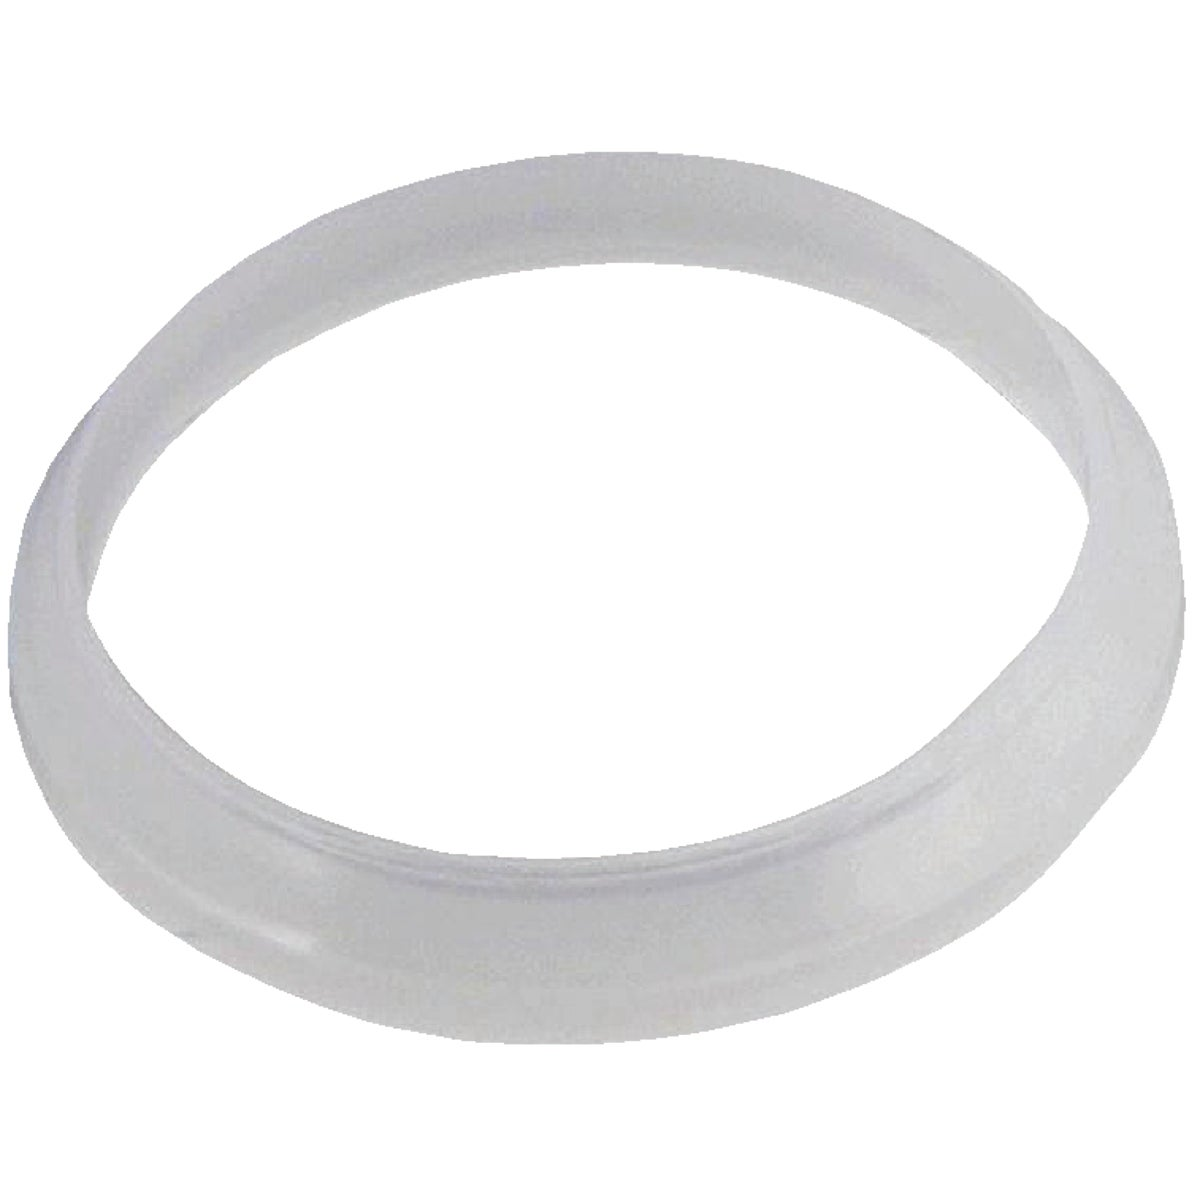 1-1/4 BEVELED S/J WASHER